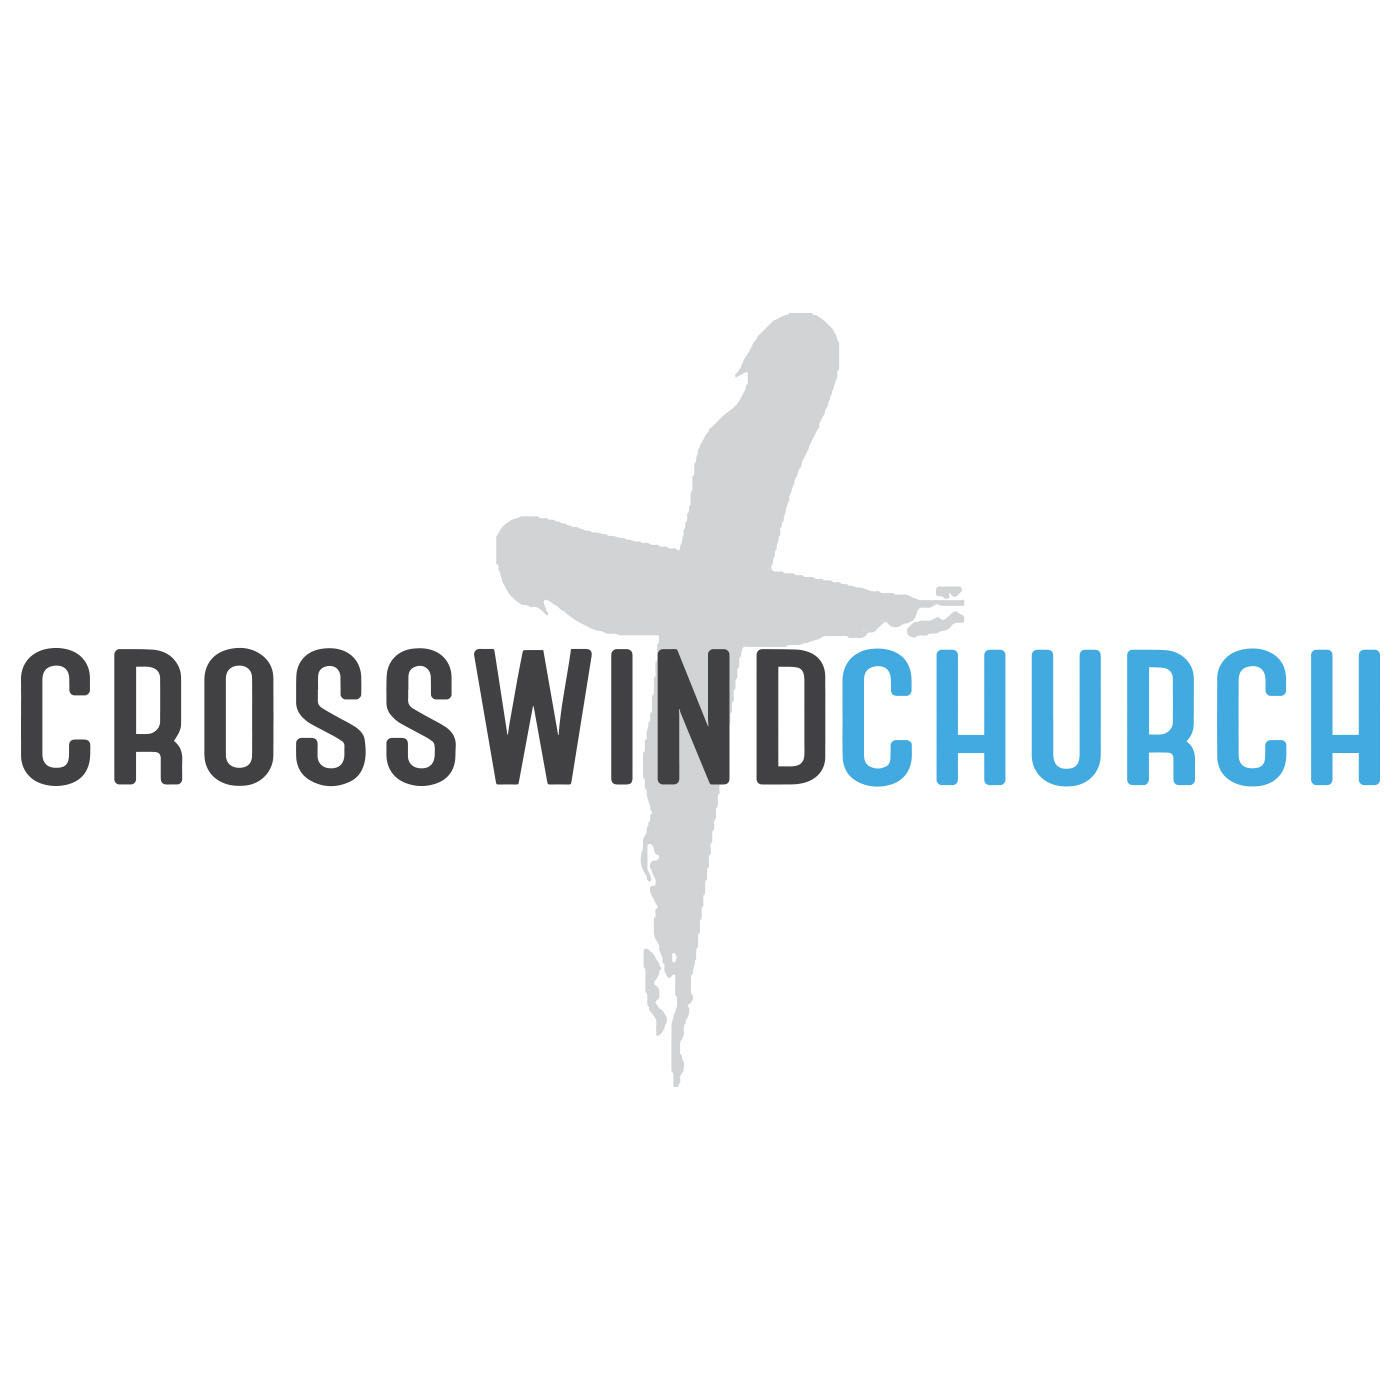 Helping Hand Ministry - CrossWind Church